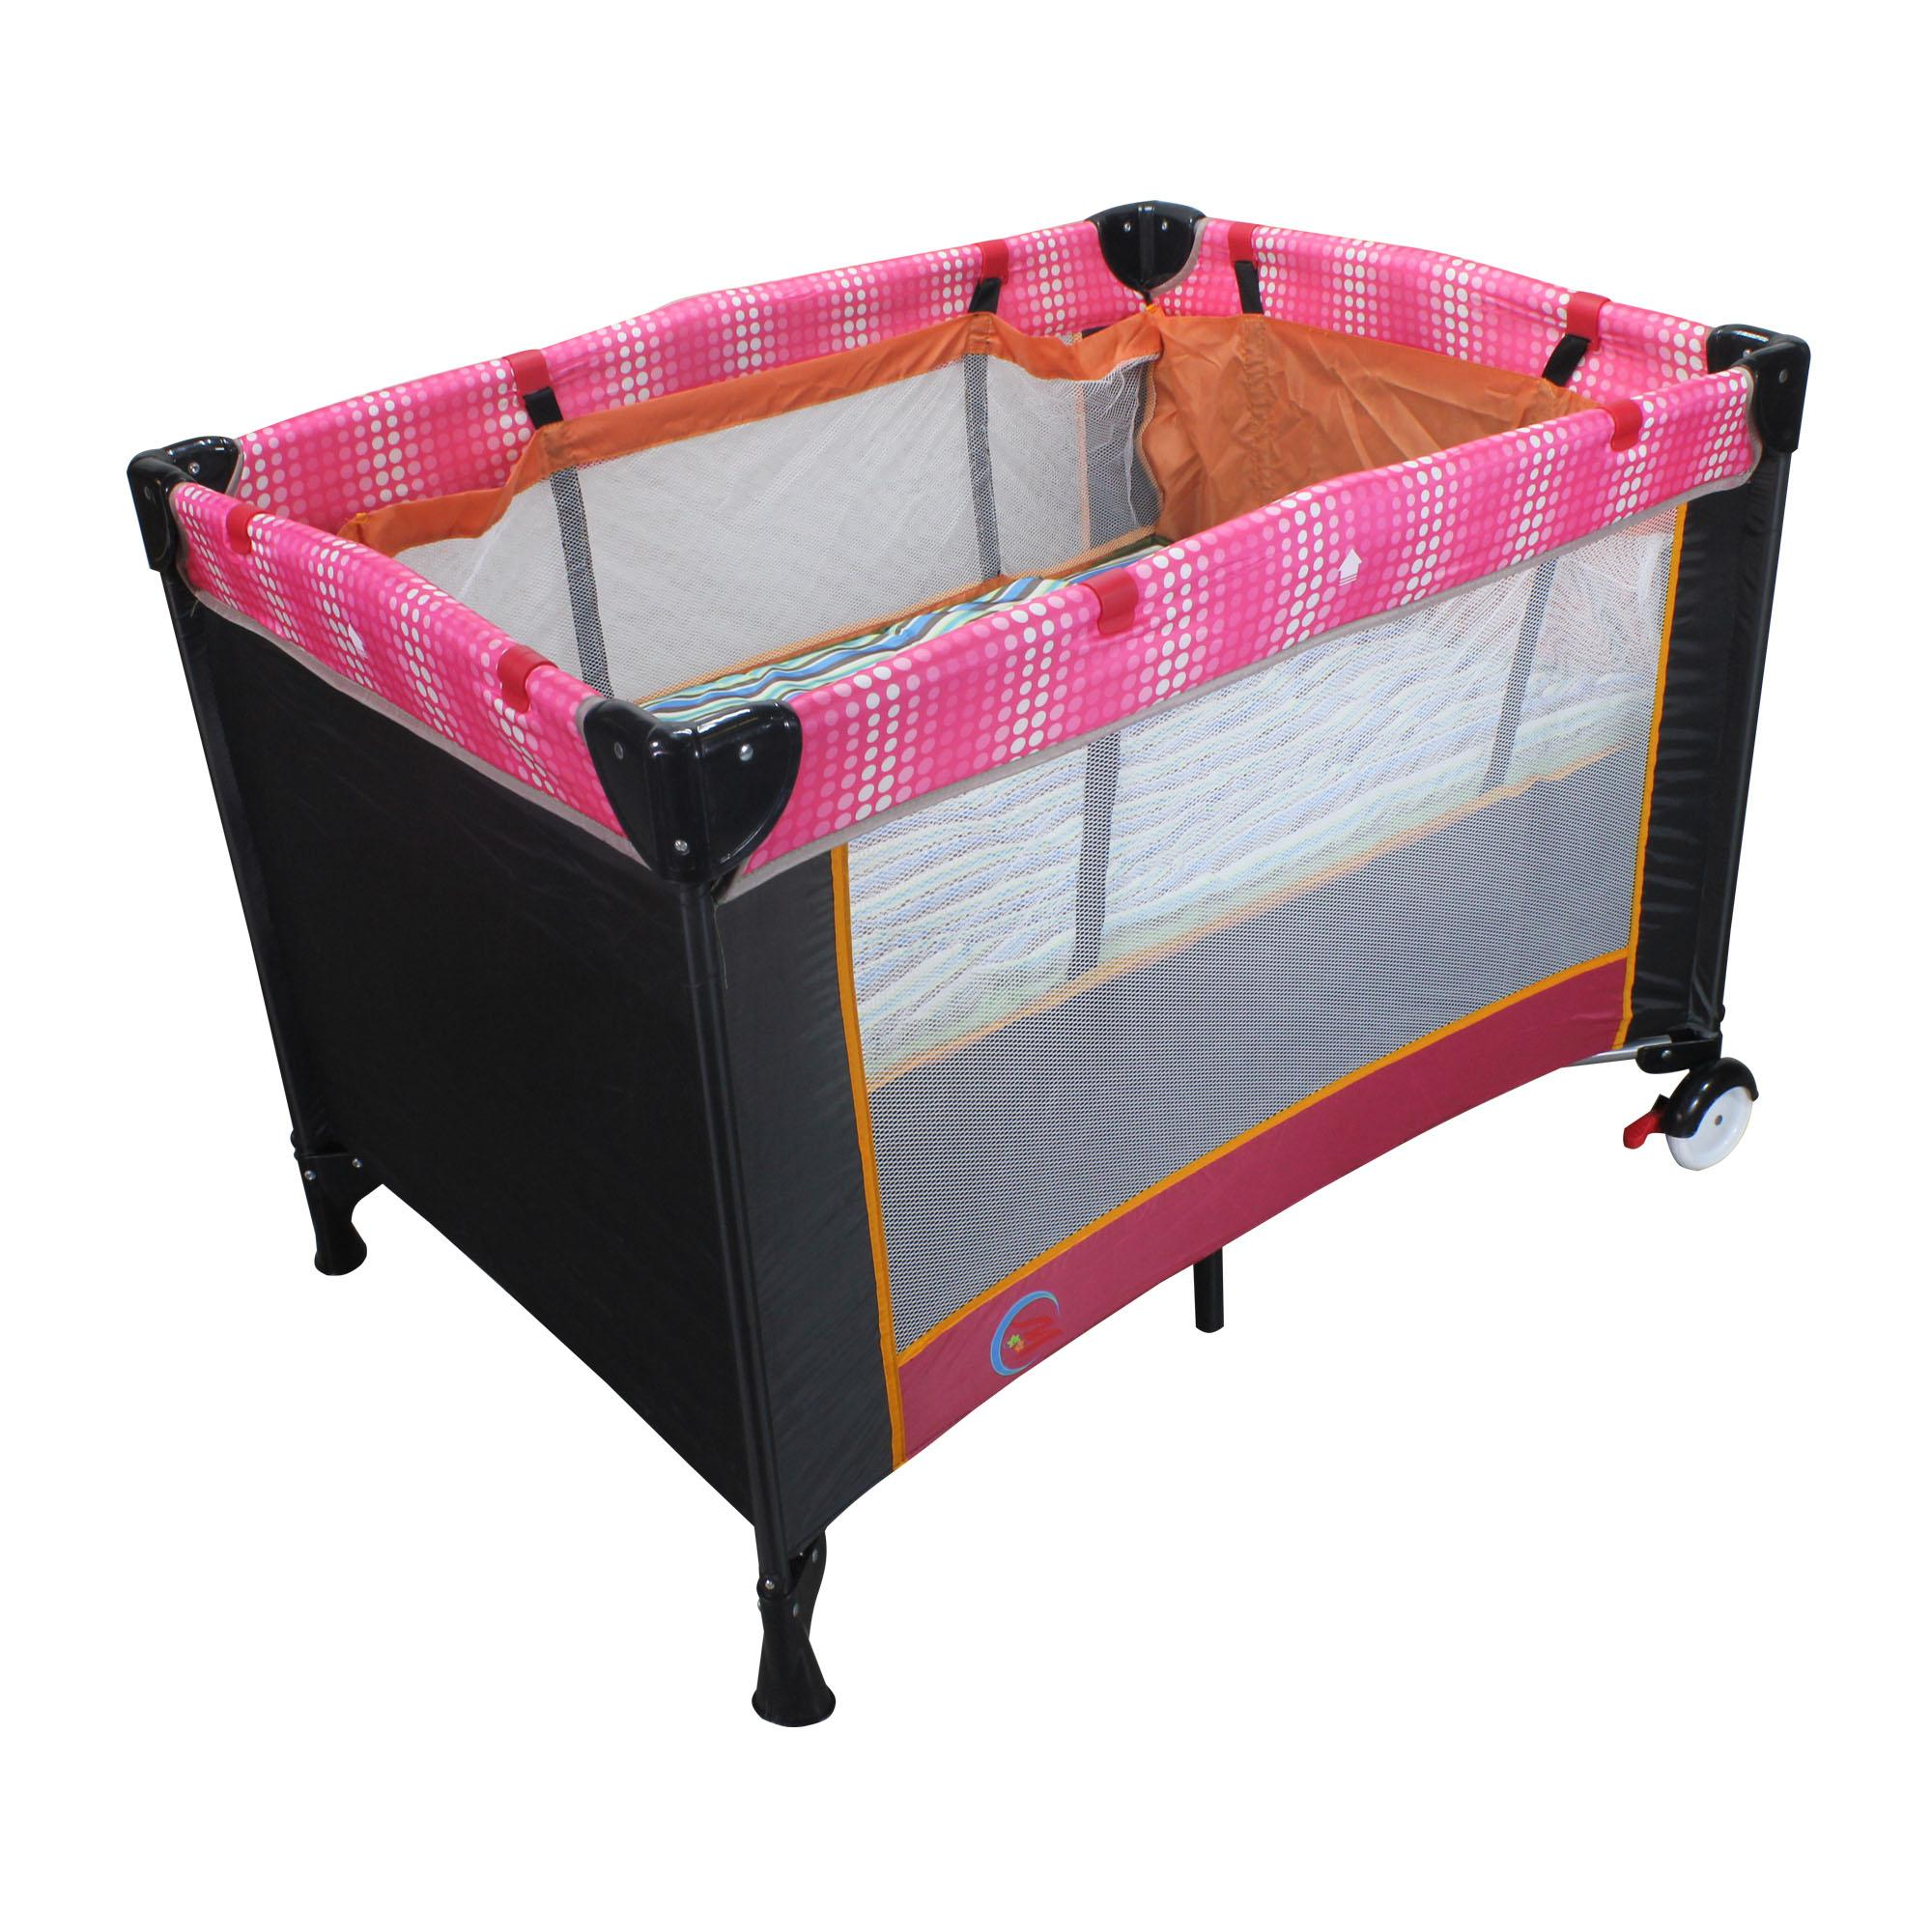 New Unicorn Baby Portable Foldable Playpen Play Yard Baby Crib 03(Pink/black) image